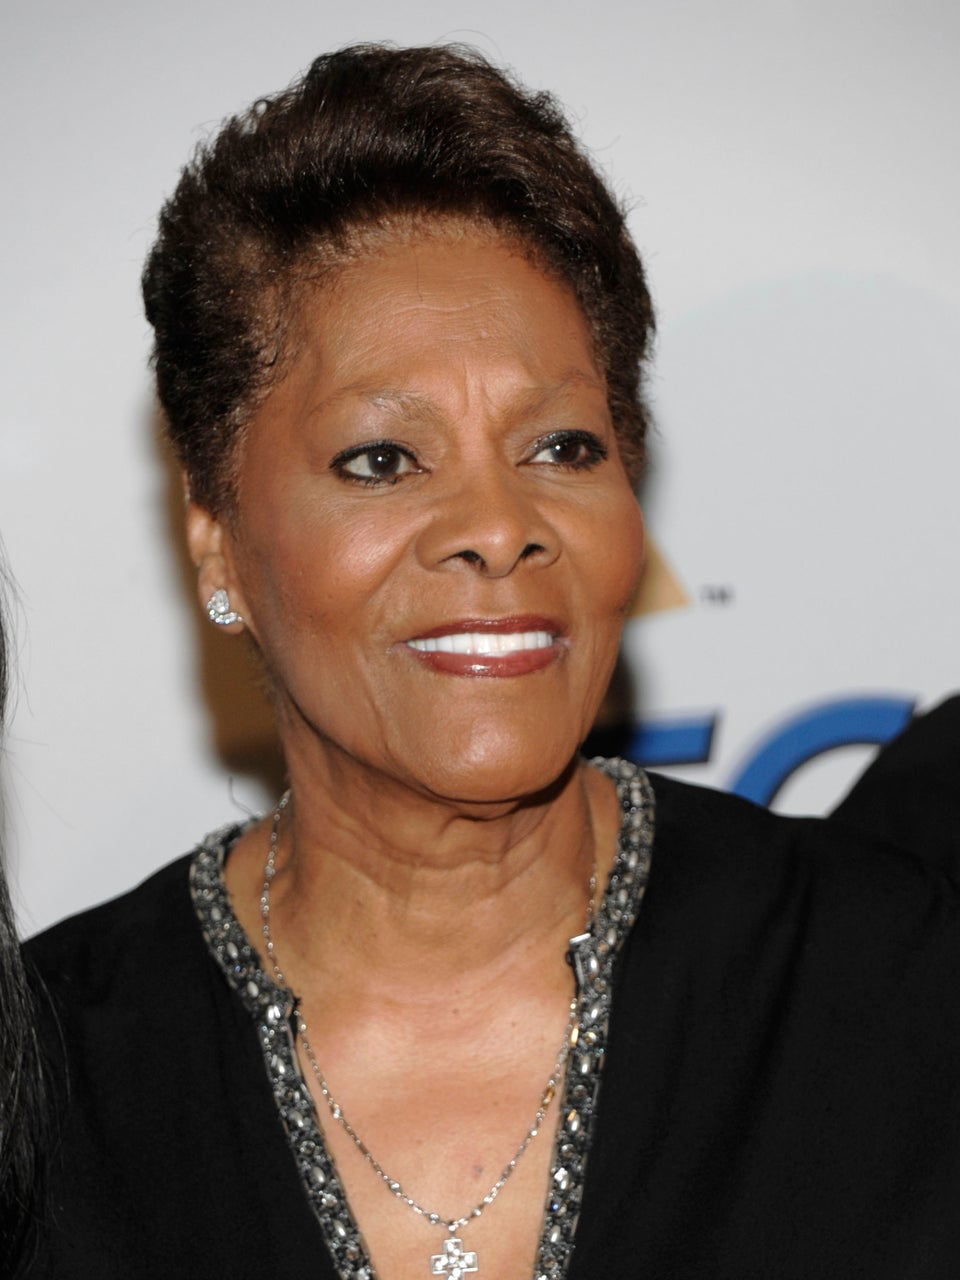 Coffee Talk: Dionne Warwick Files for Bankruptcy Over Tax Liens